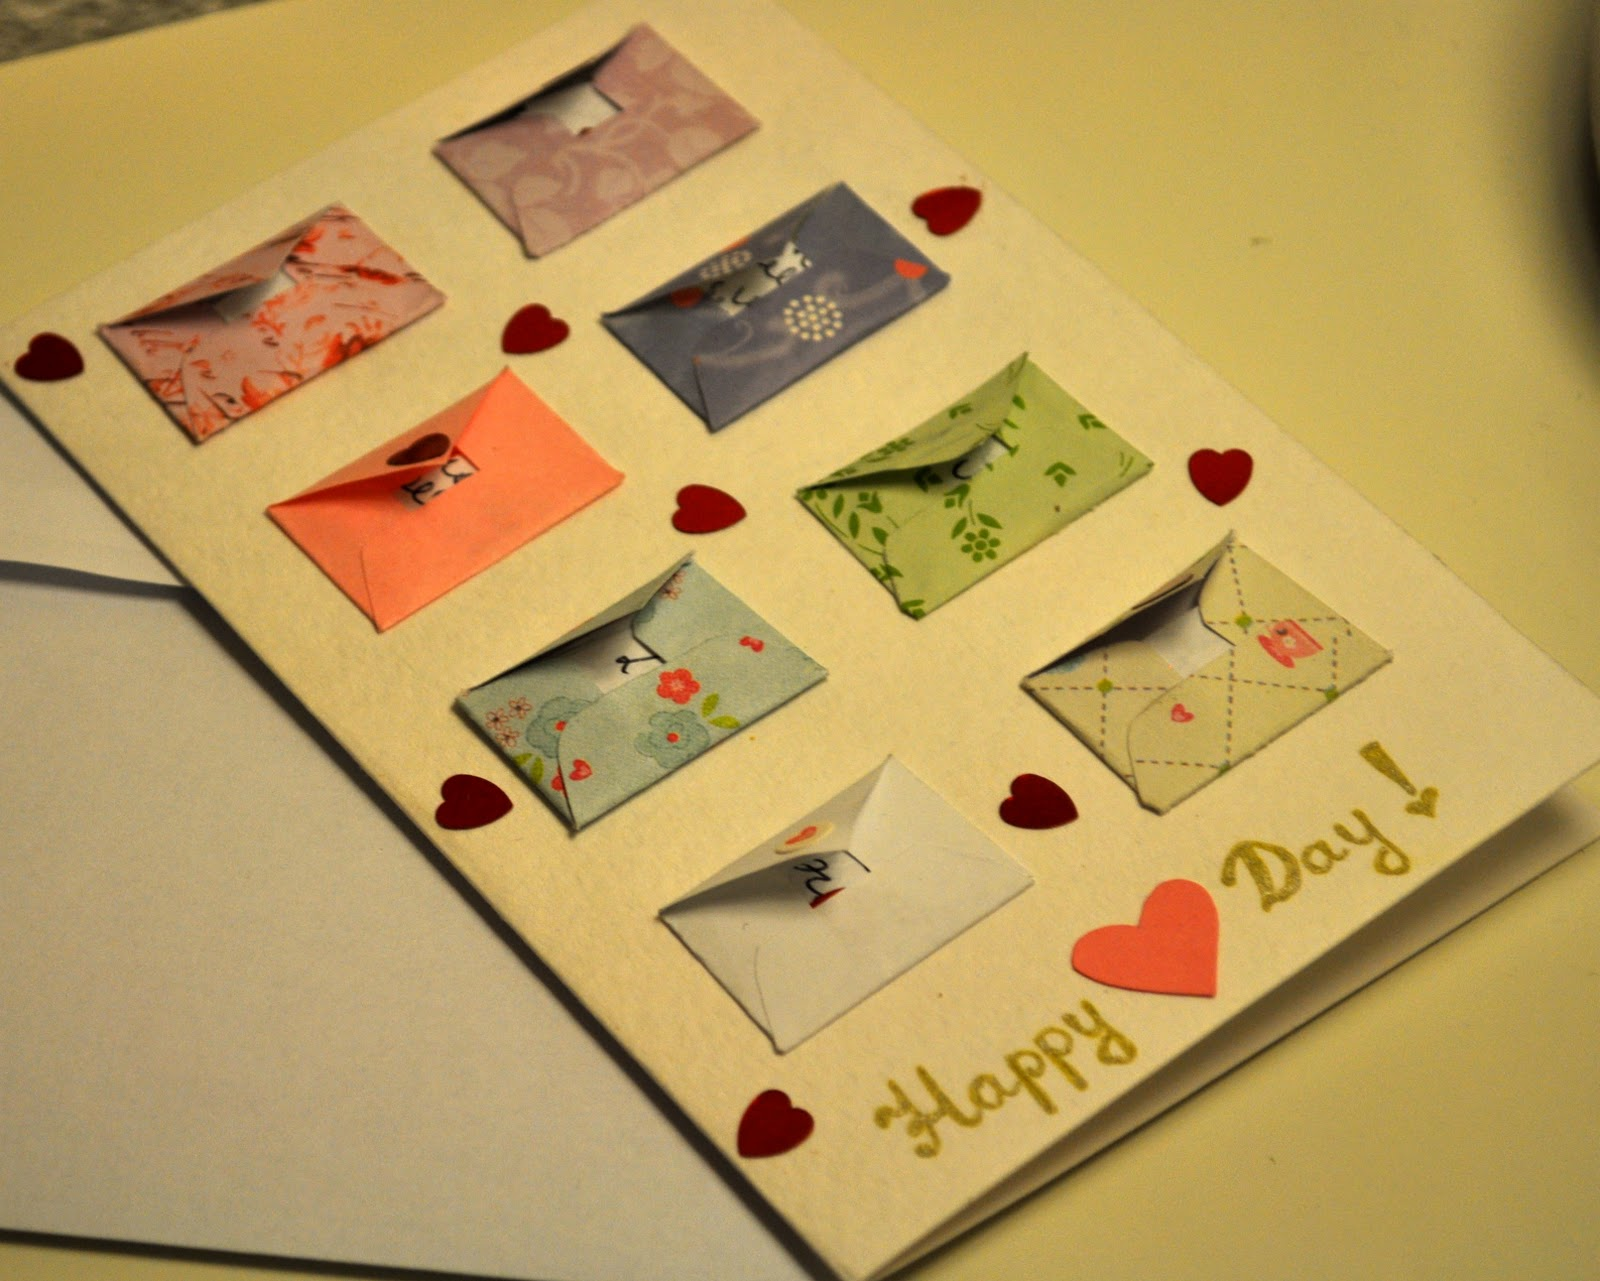 Handmade Cards and Decorations By Ekaterina Marmy: January 2012